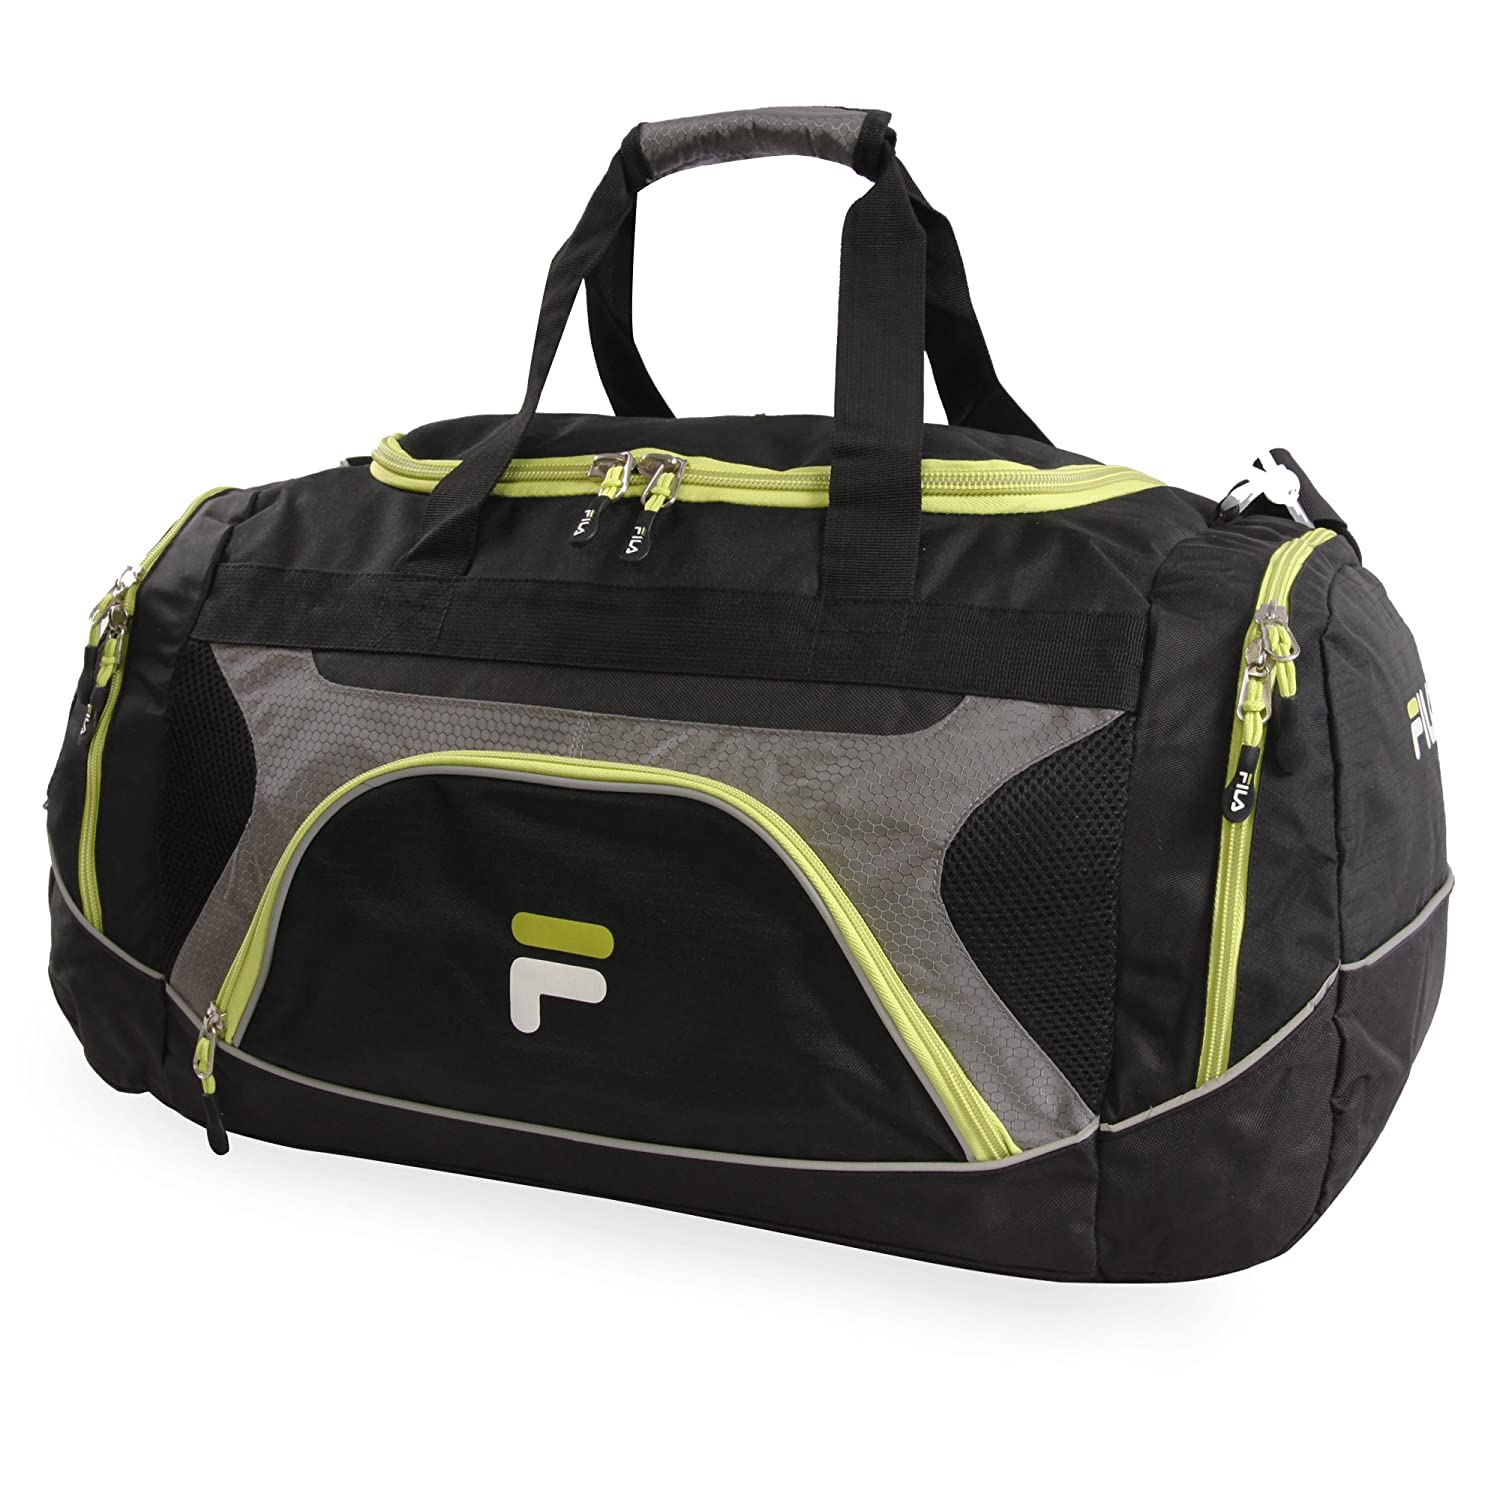 Fila Donlon Small Travel Gym Sport Duffel Bag, Neon Lime